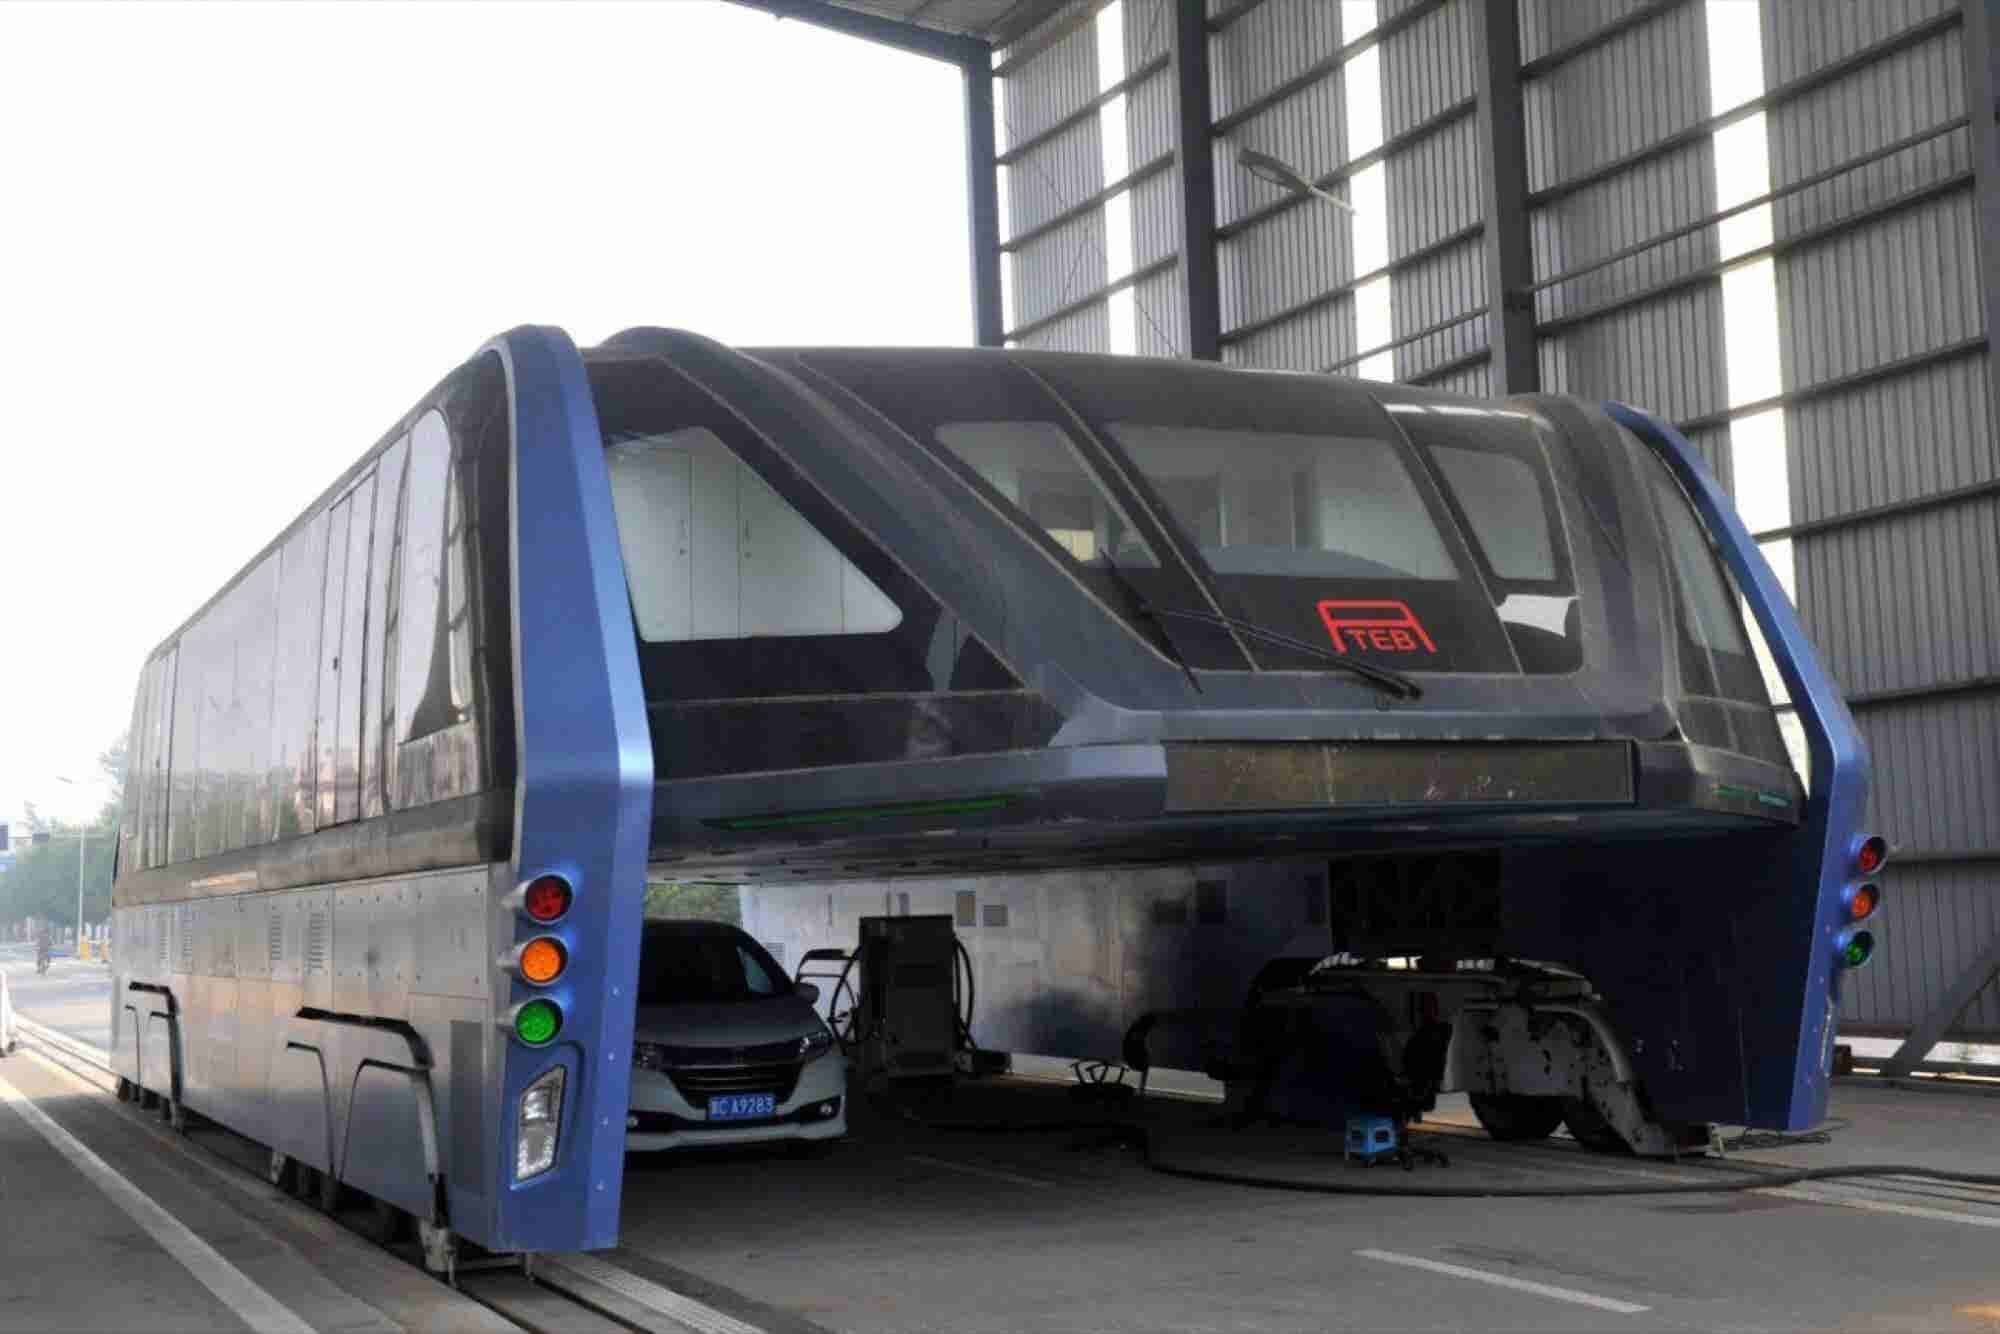 China's 'Elevated' Bus Was a Scam After All